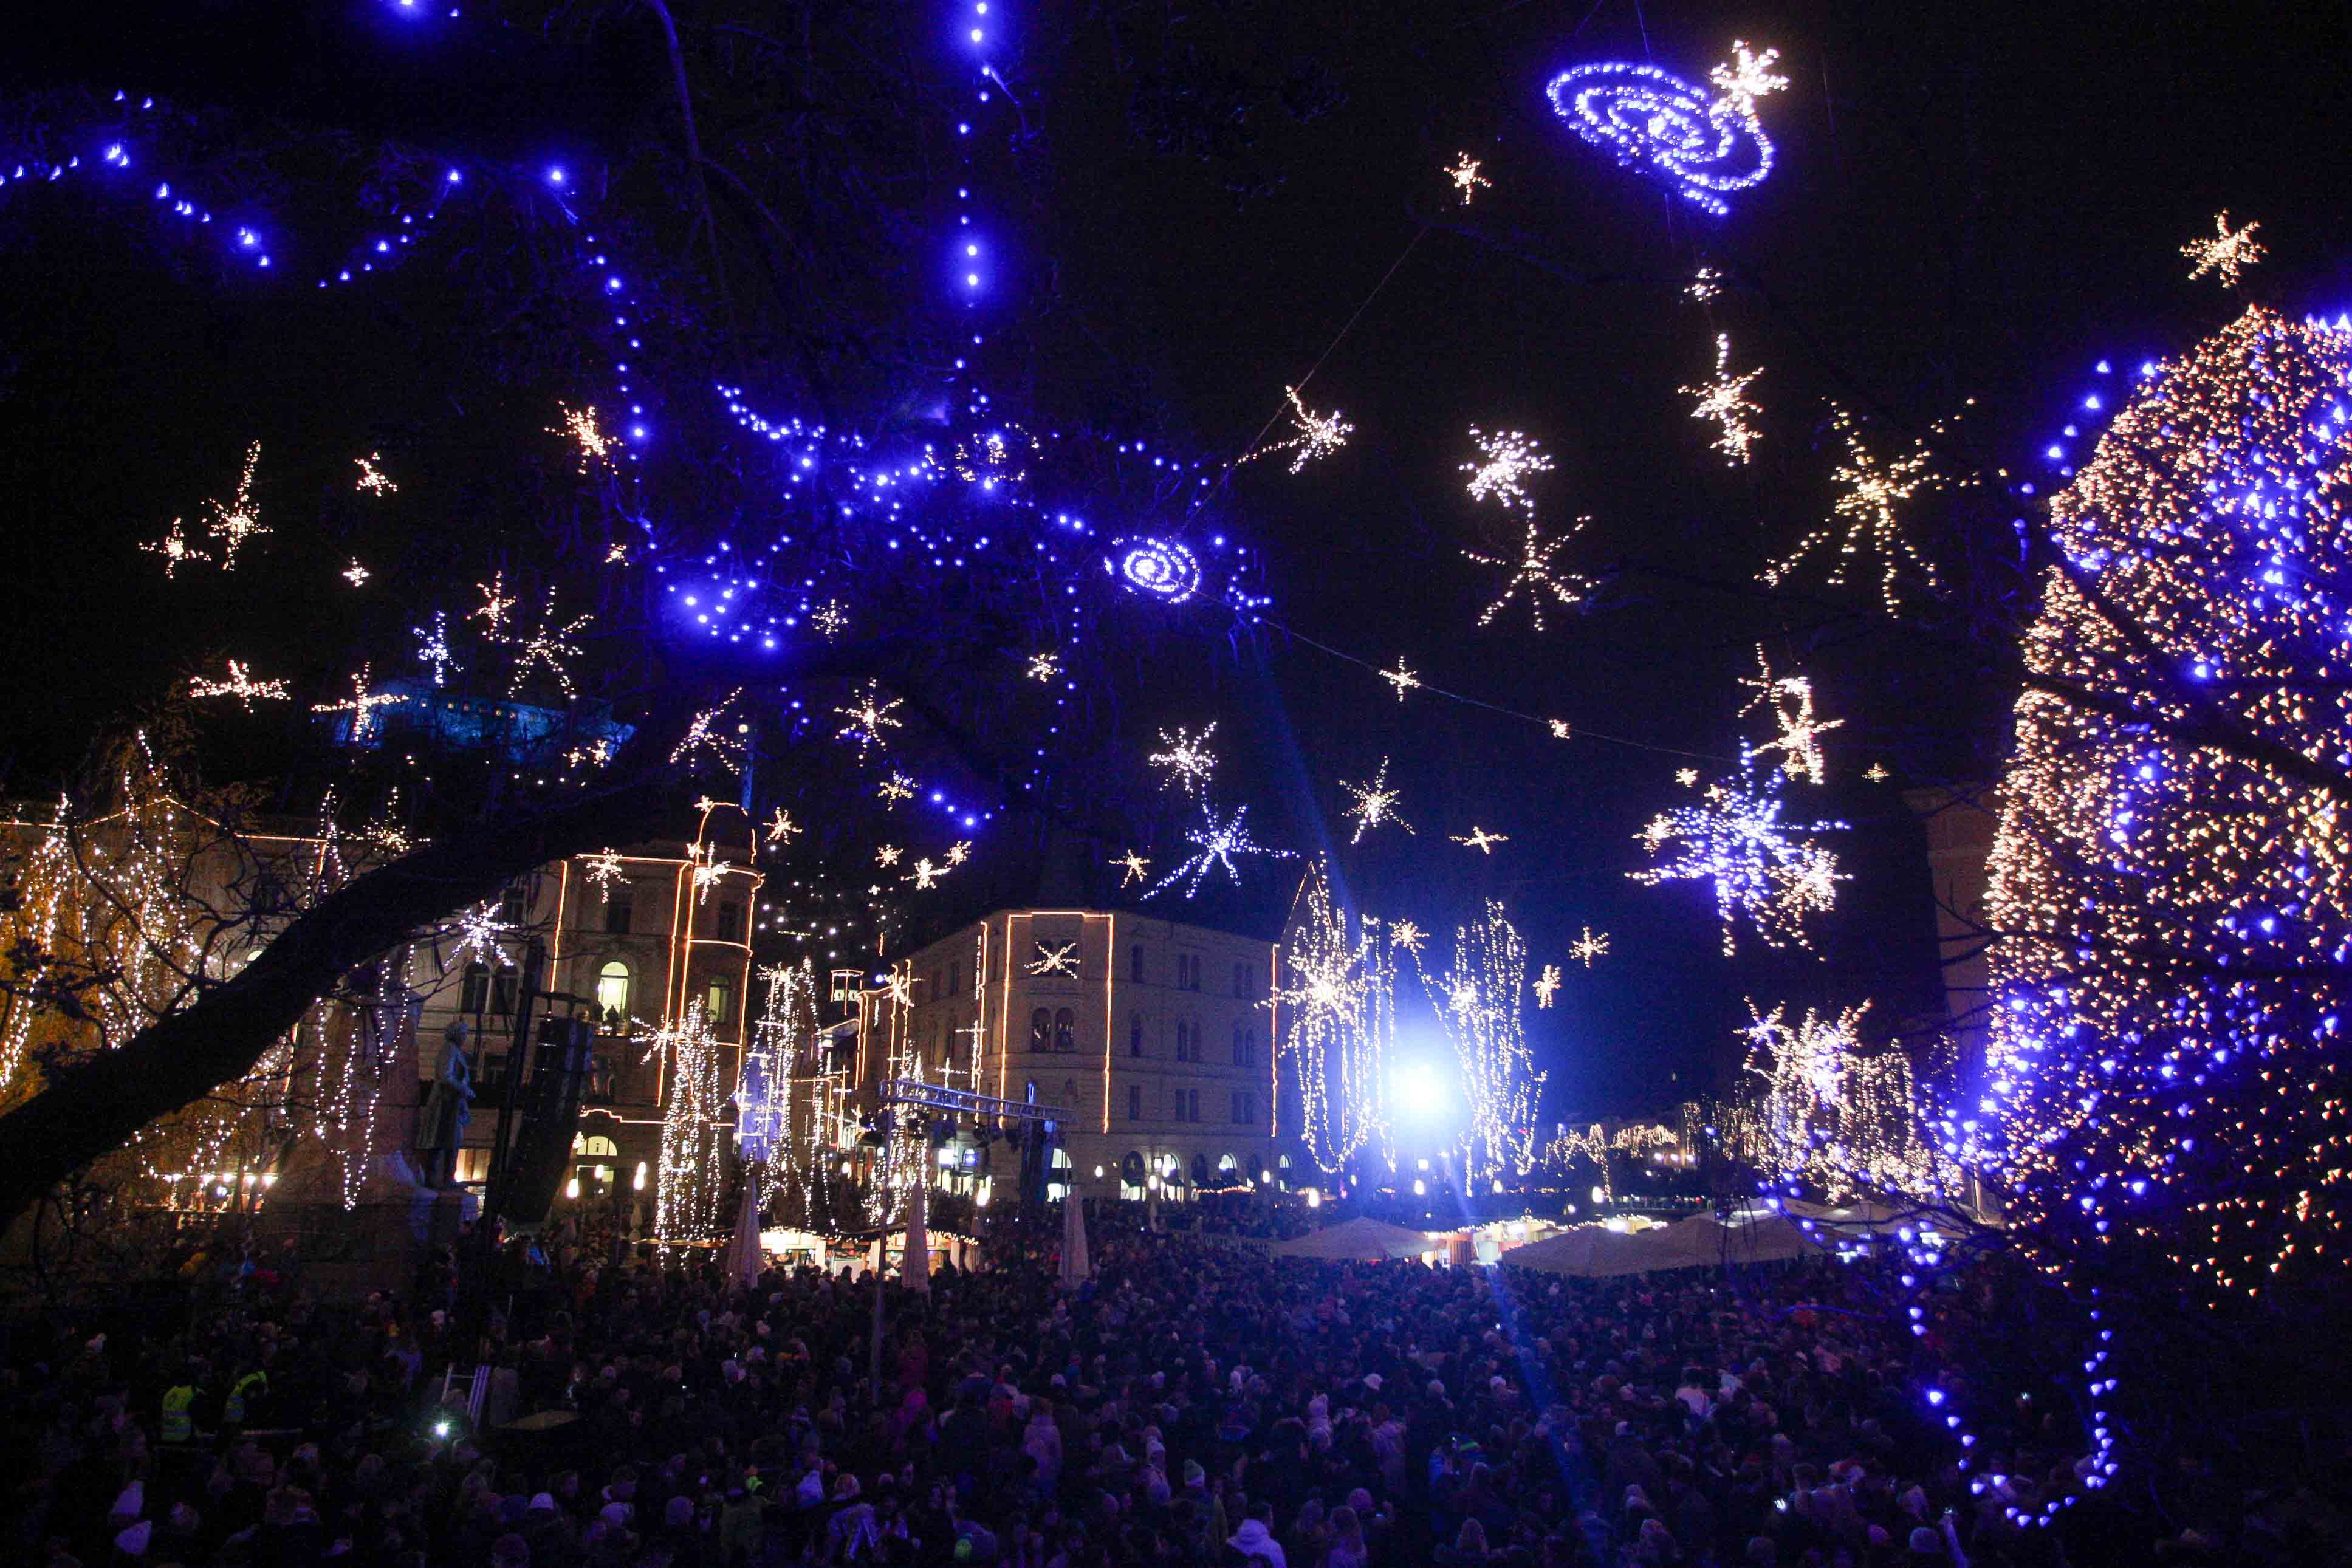 on friday 1 december the festive december events started in ljubljana with the switching on of christmas lights and the opening of the festive fair